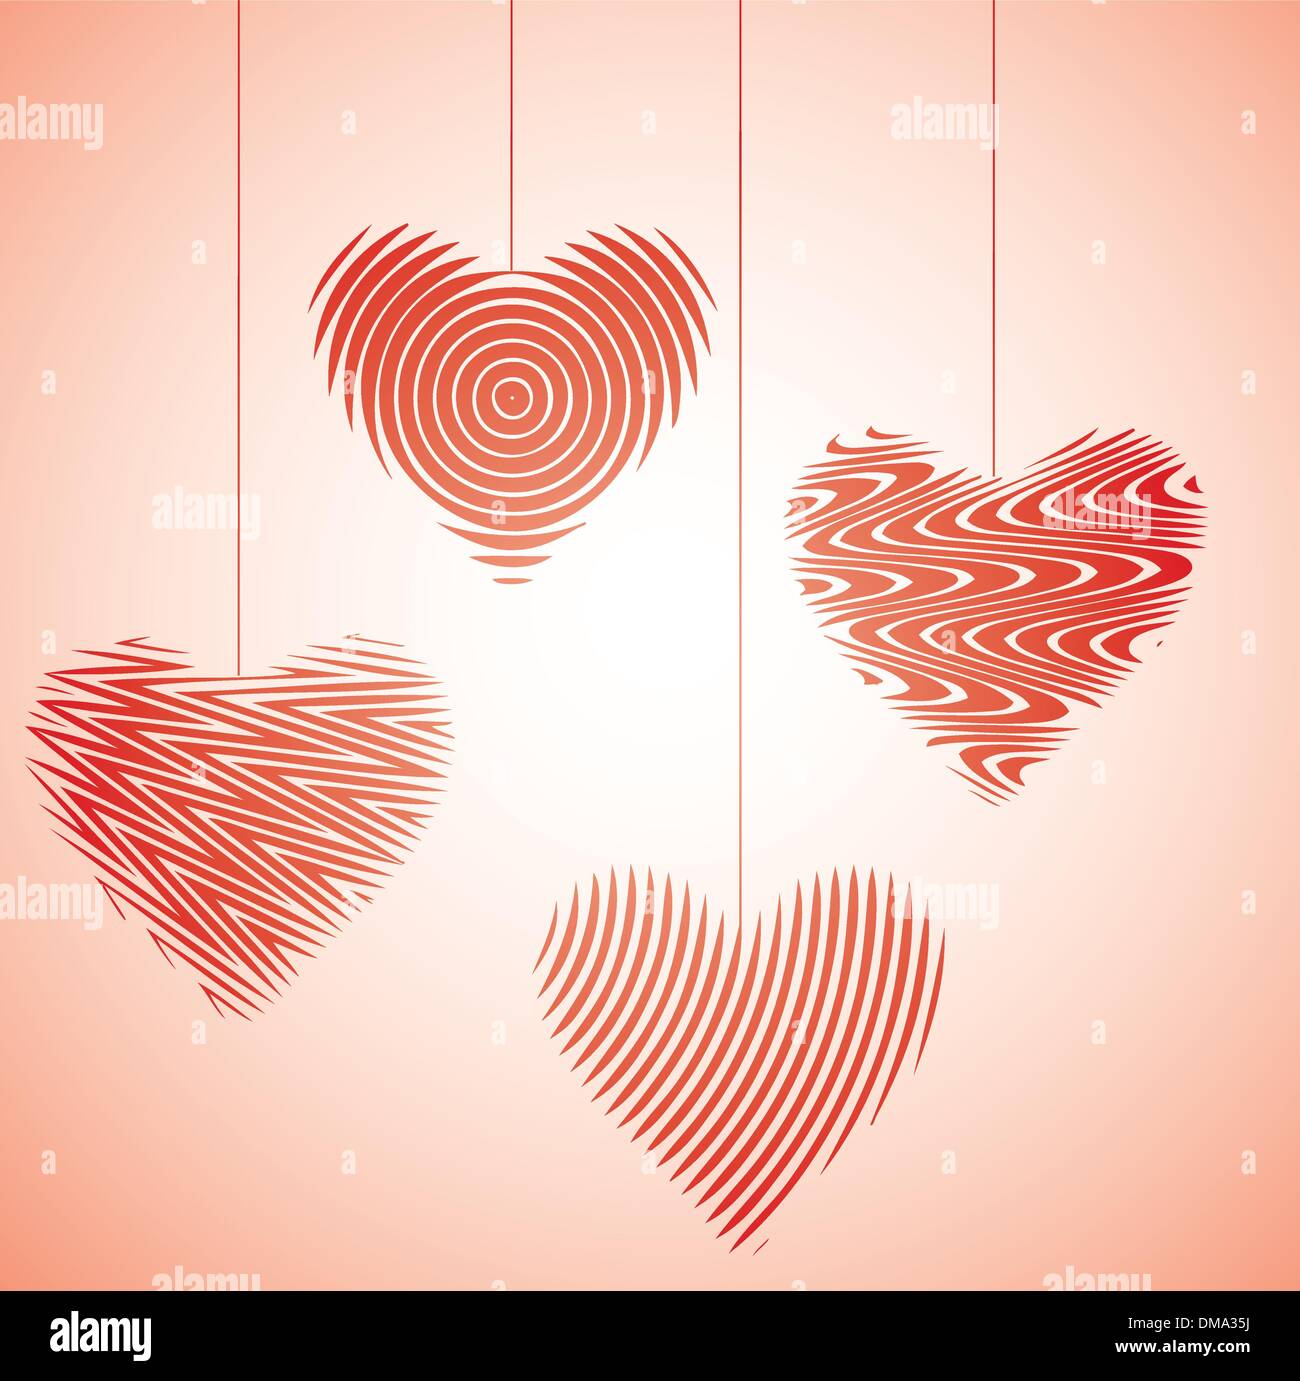 Heart dance IV - Stock Vector